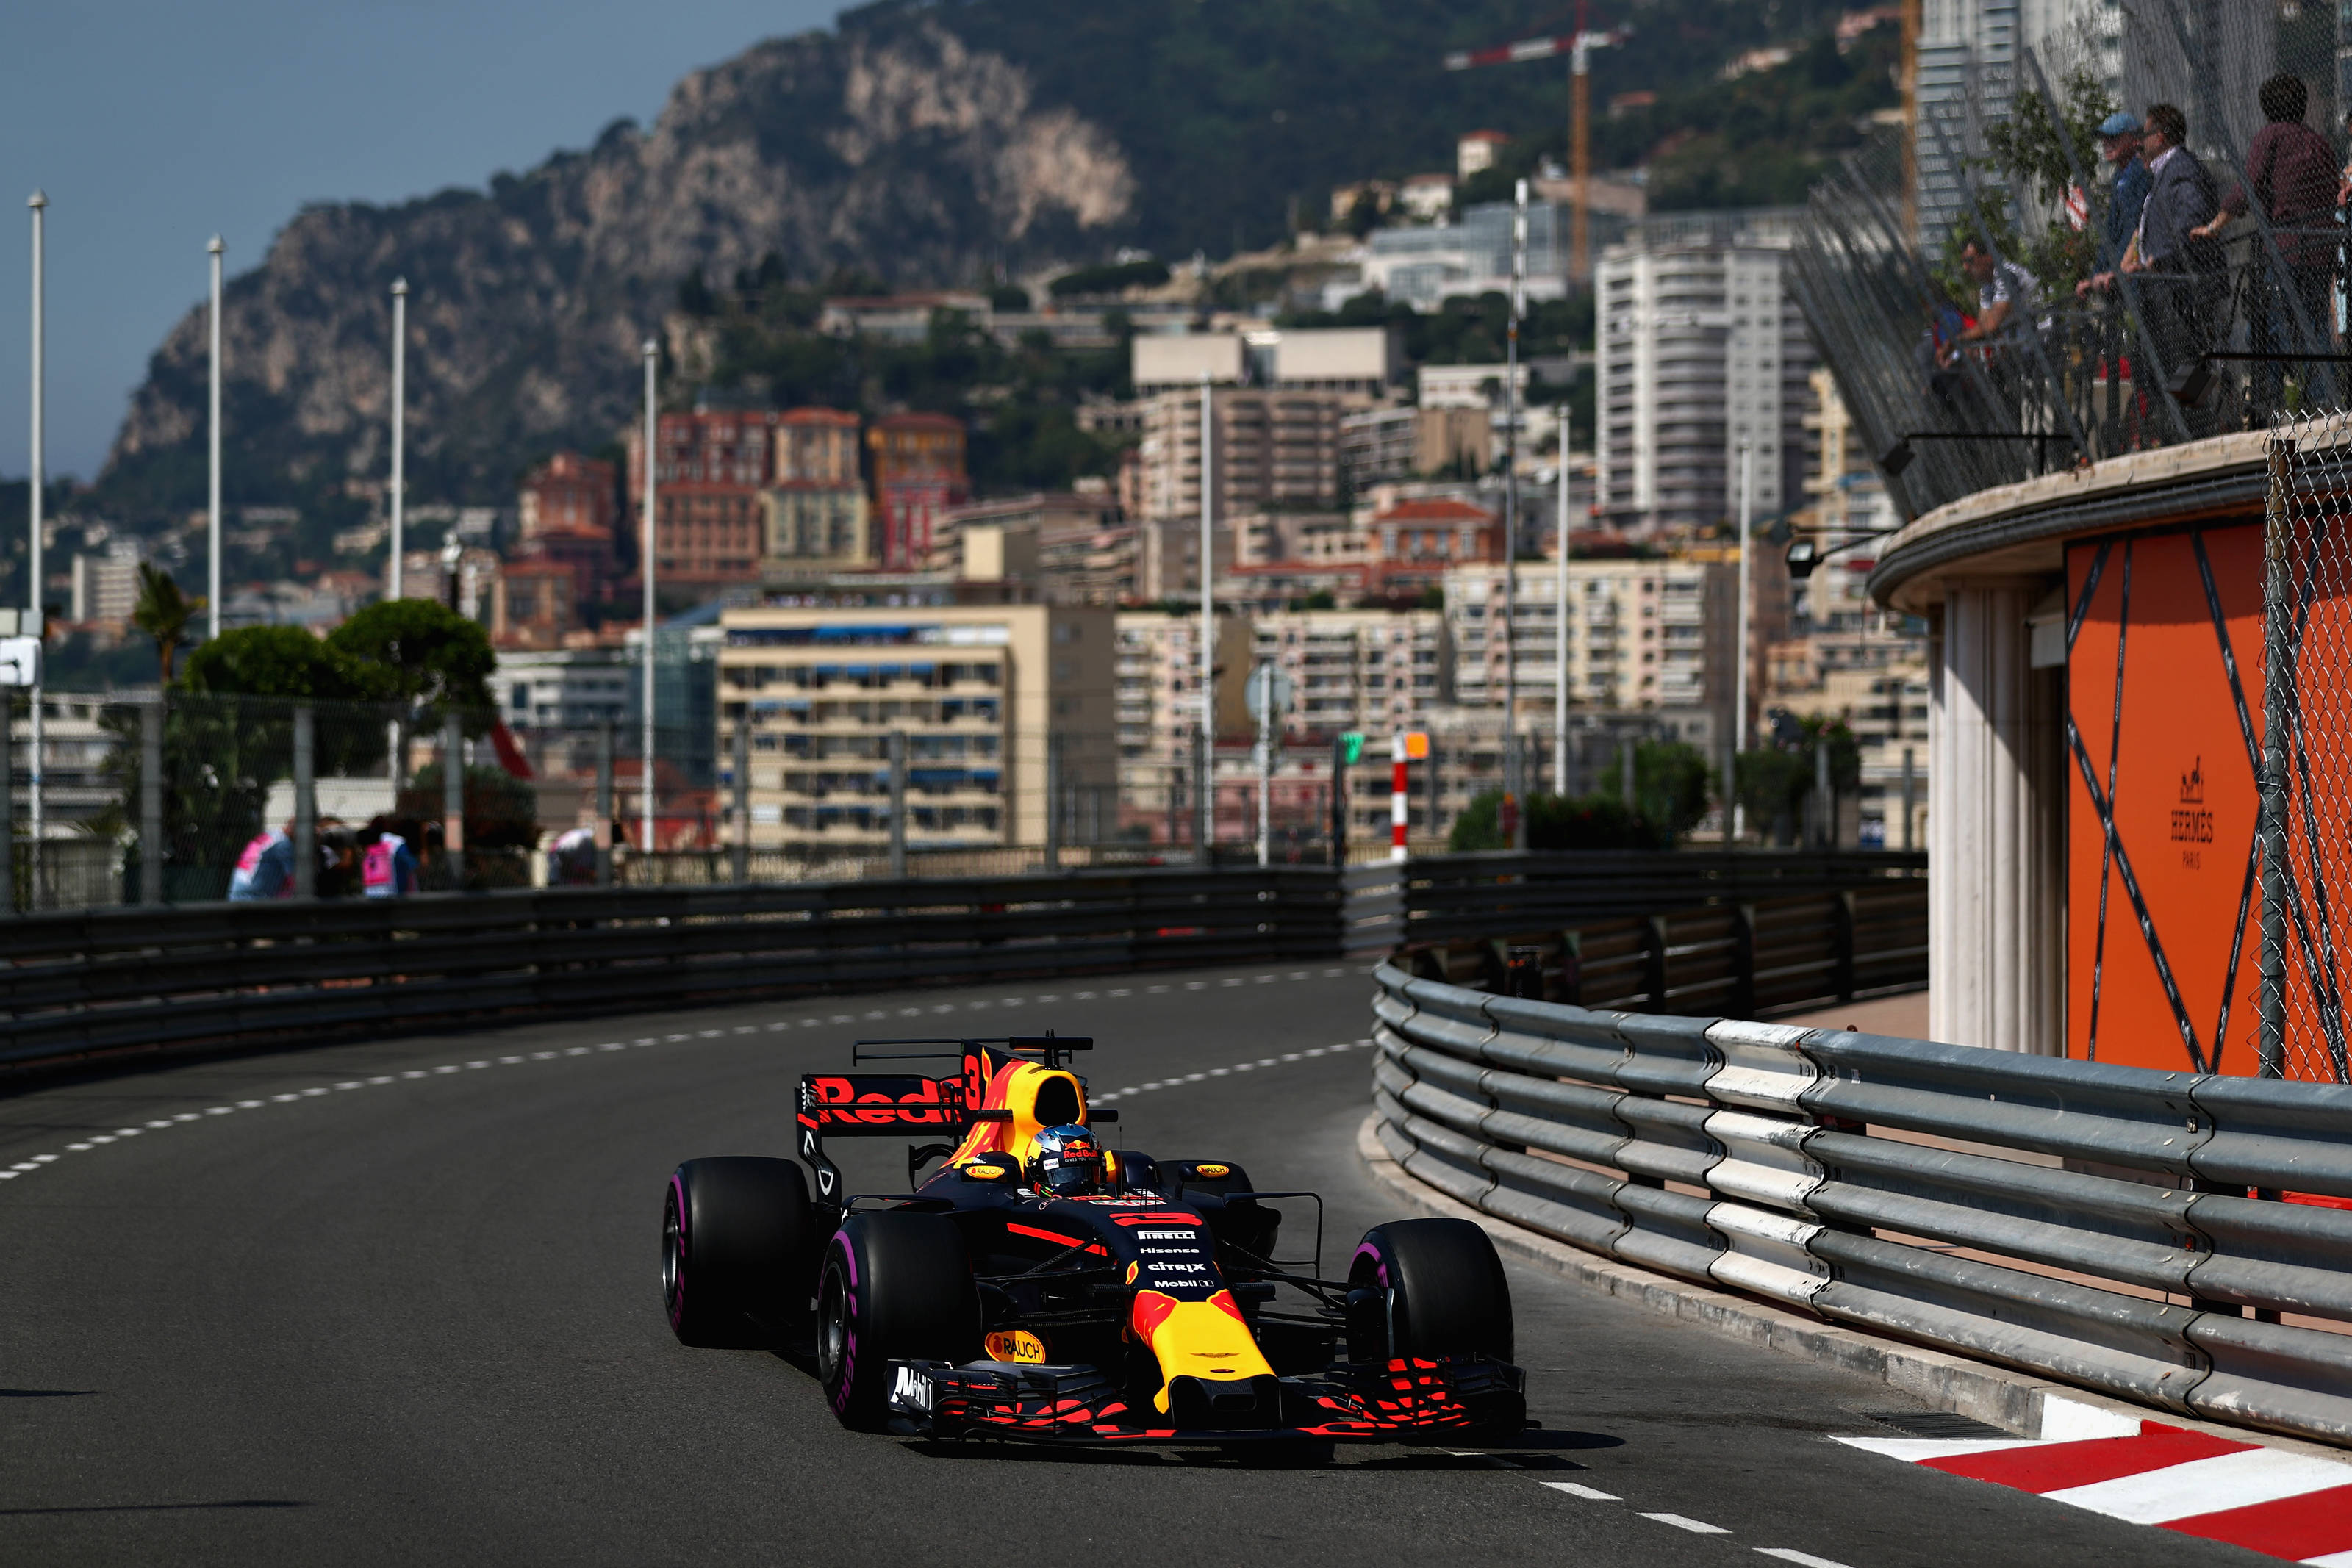 Daniel Ricciardo on his way to third spot on the picturesque street circuit of Monaco. Picture: Getty Images